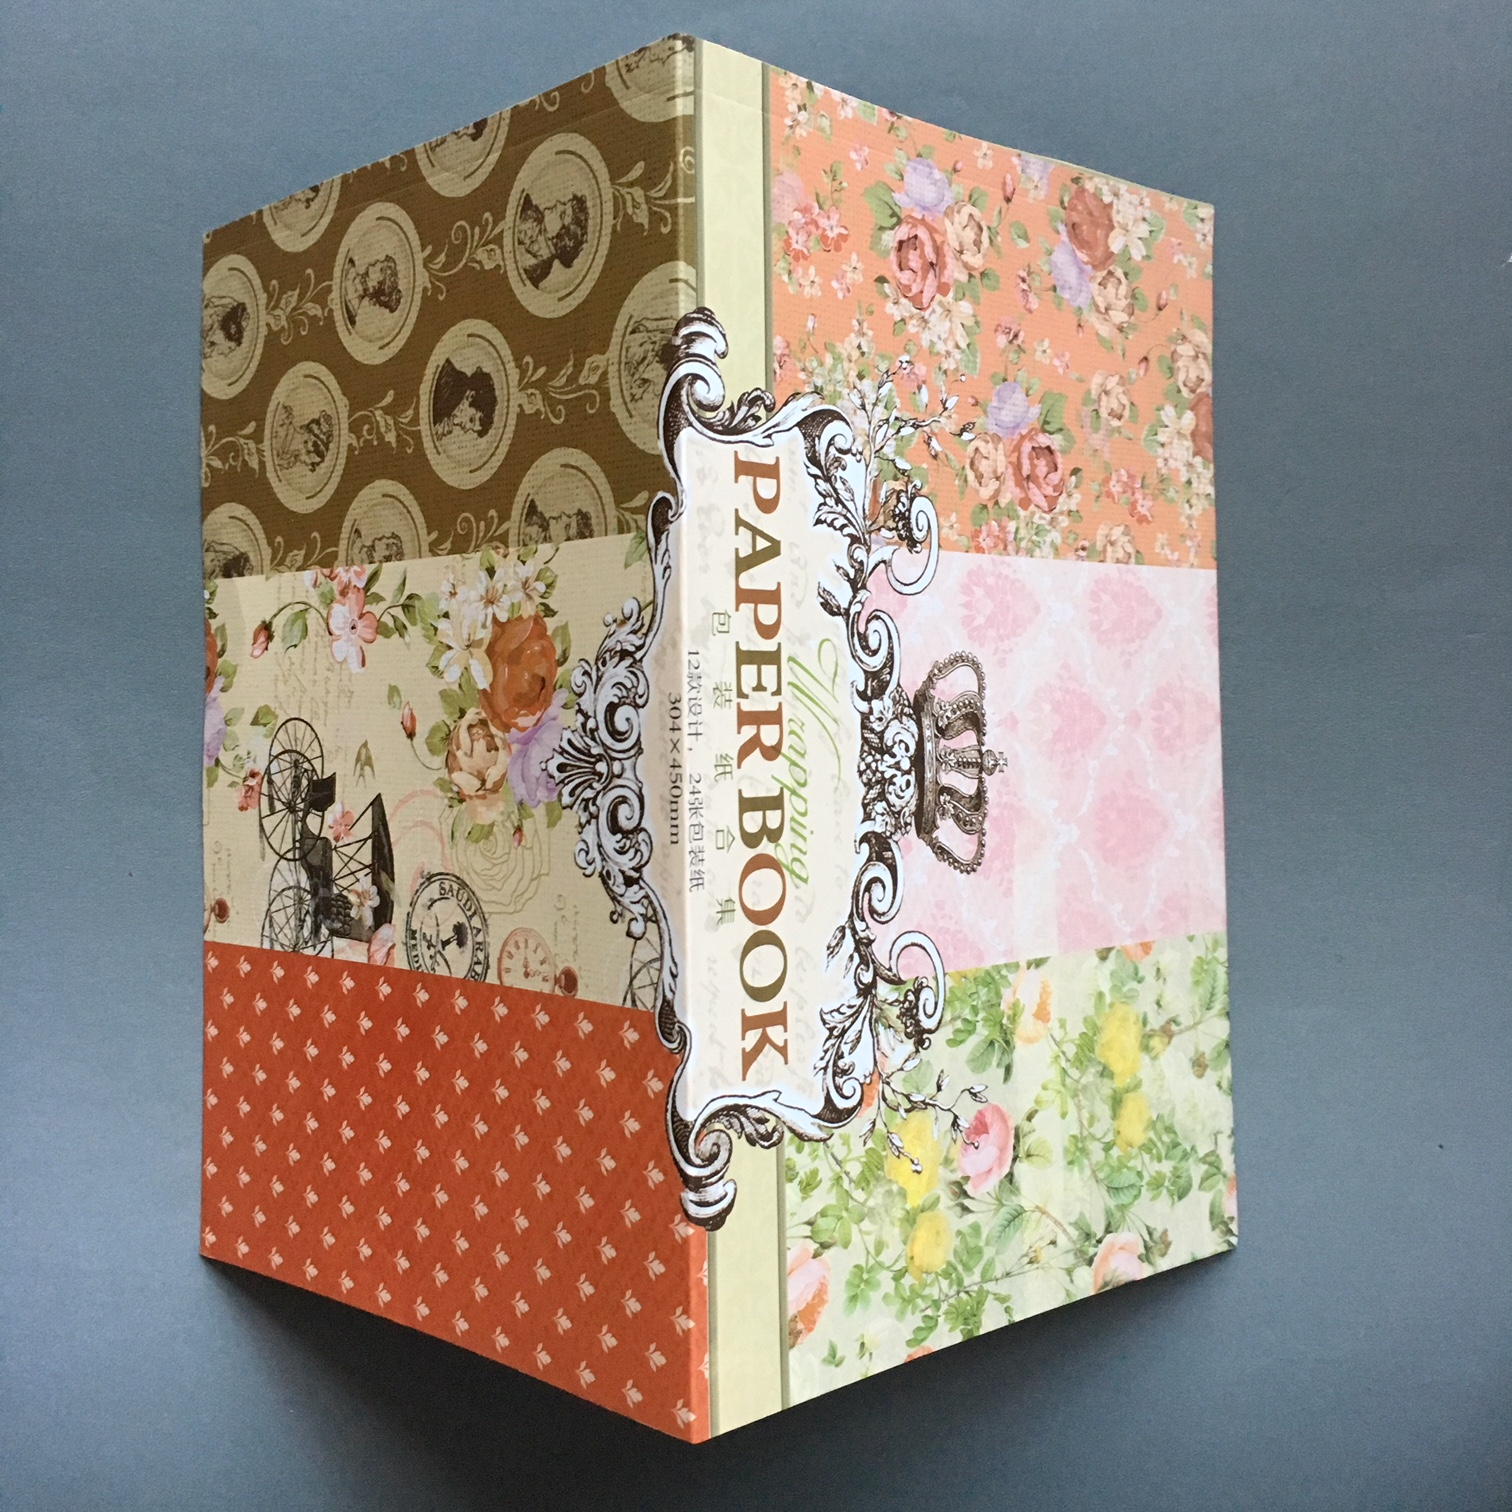 DIY smash journal cover A5 size